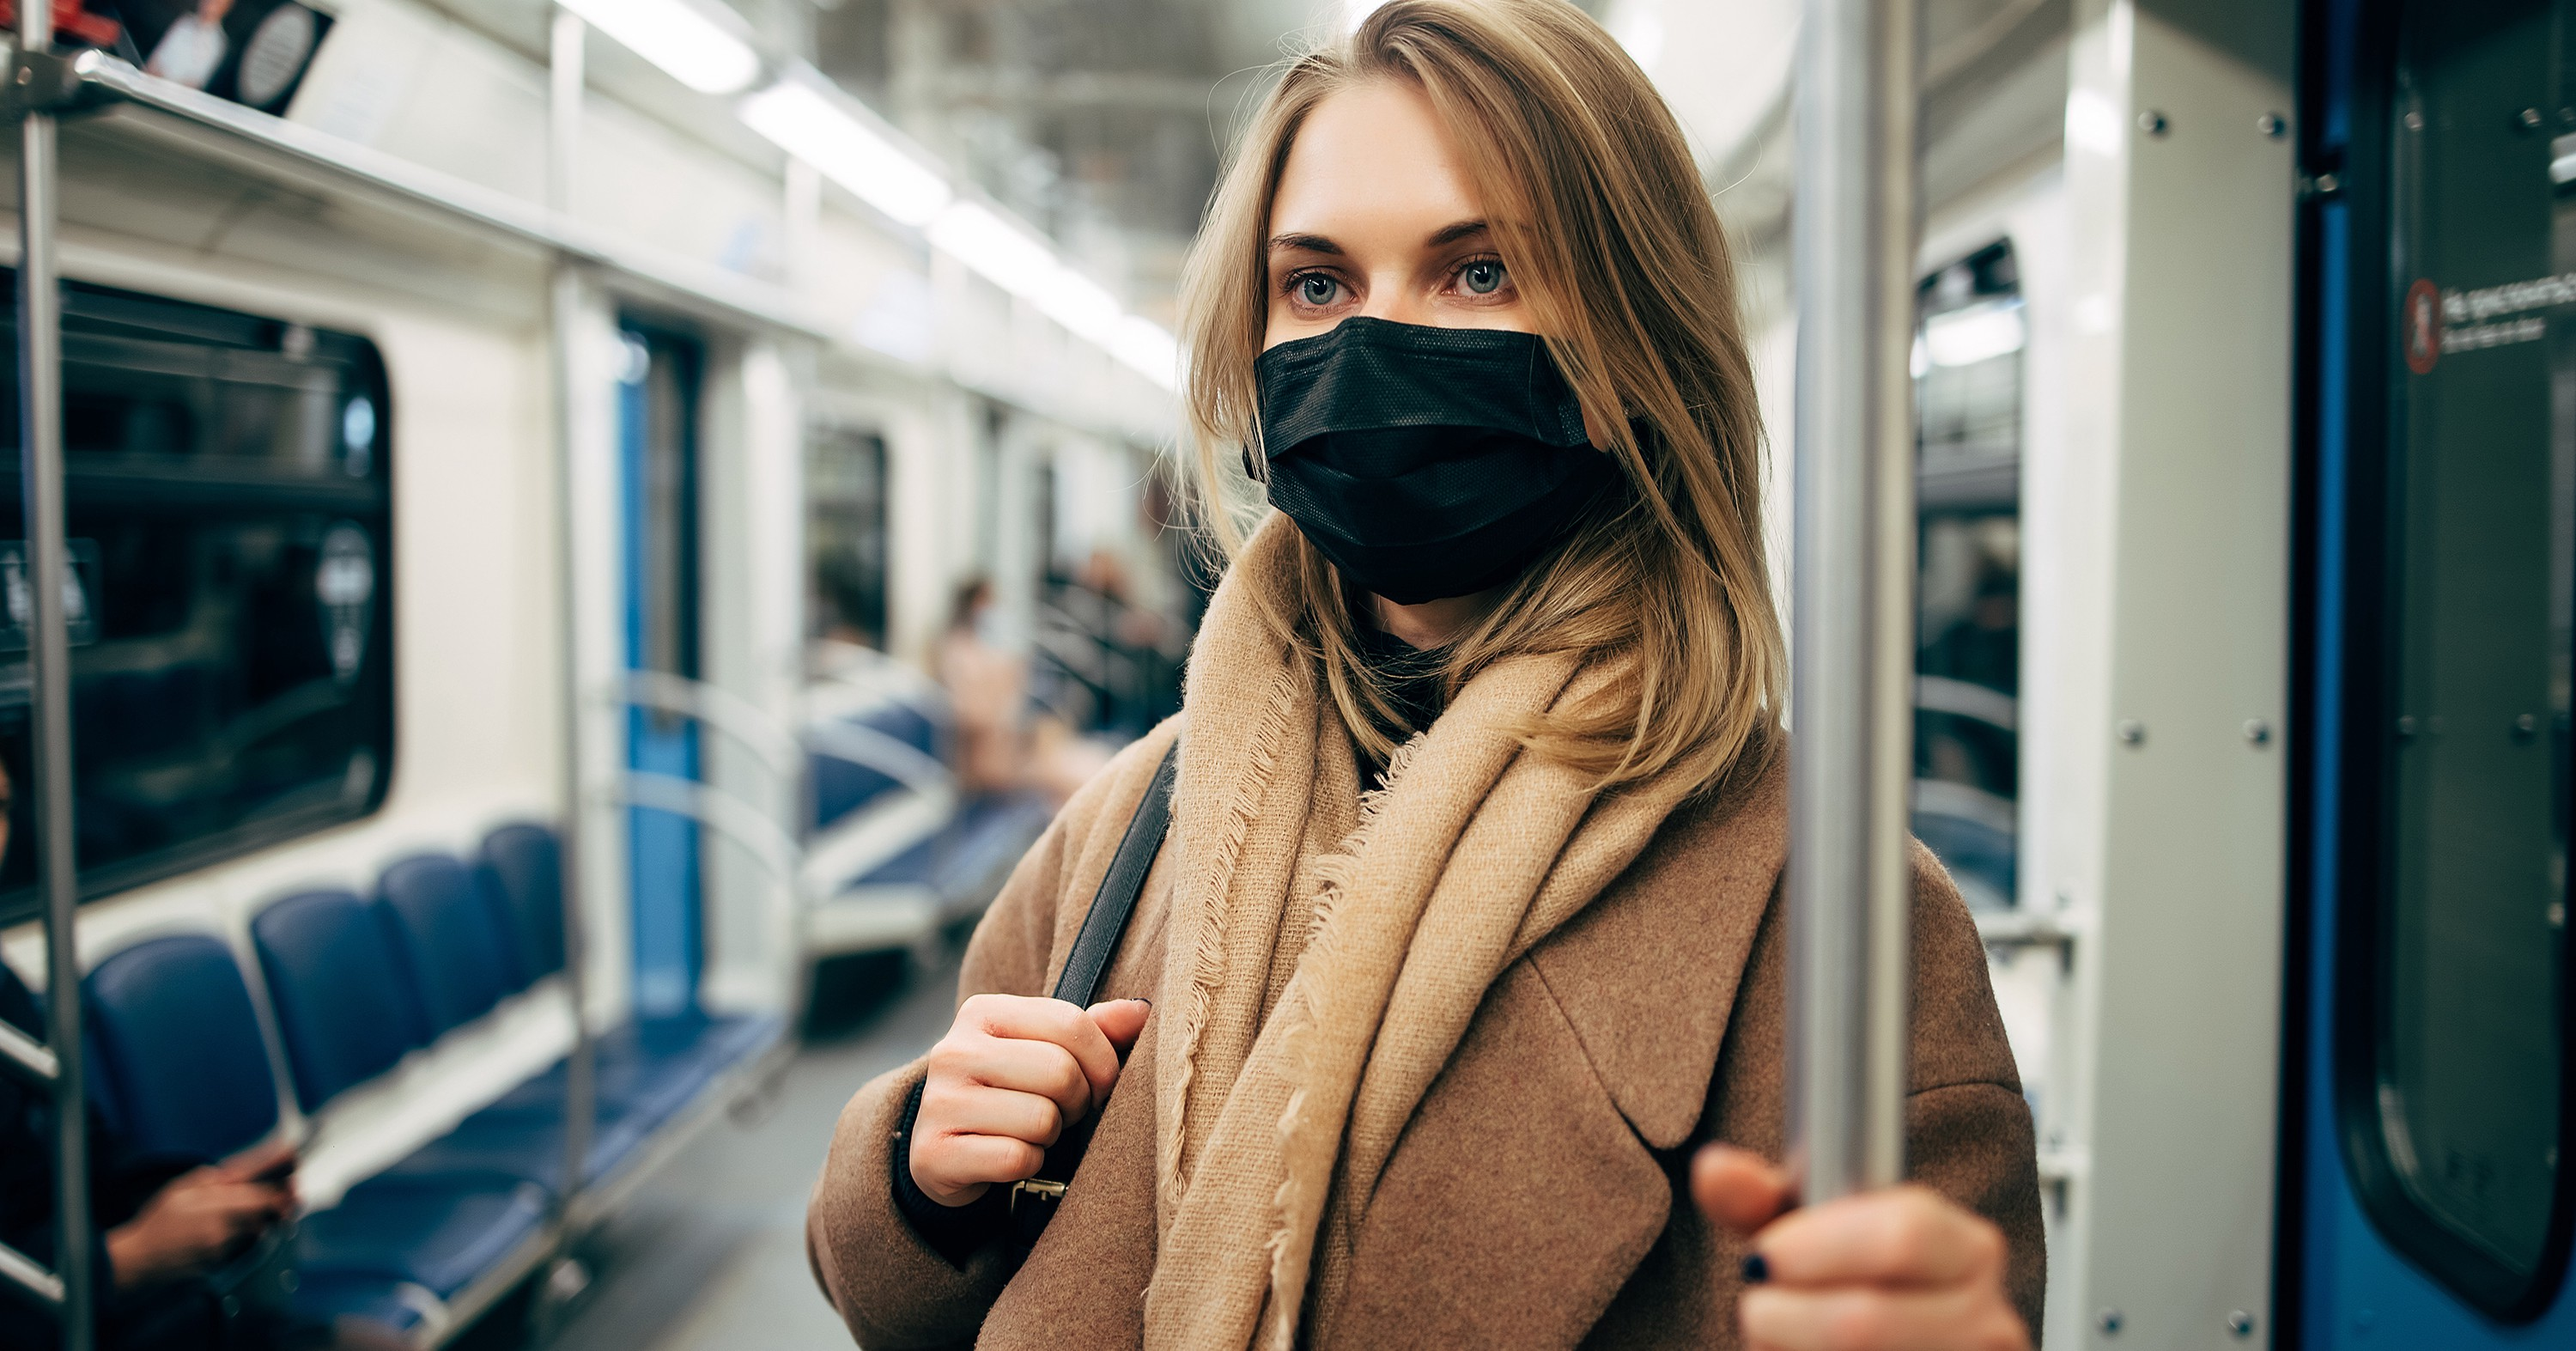 Covid-19 has fundamentally changed everything about how we work, including our commute. Image of a woman wearing a face mask.